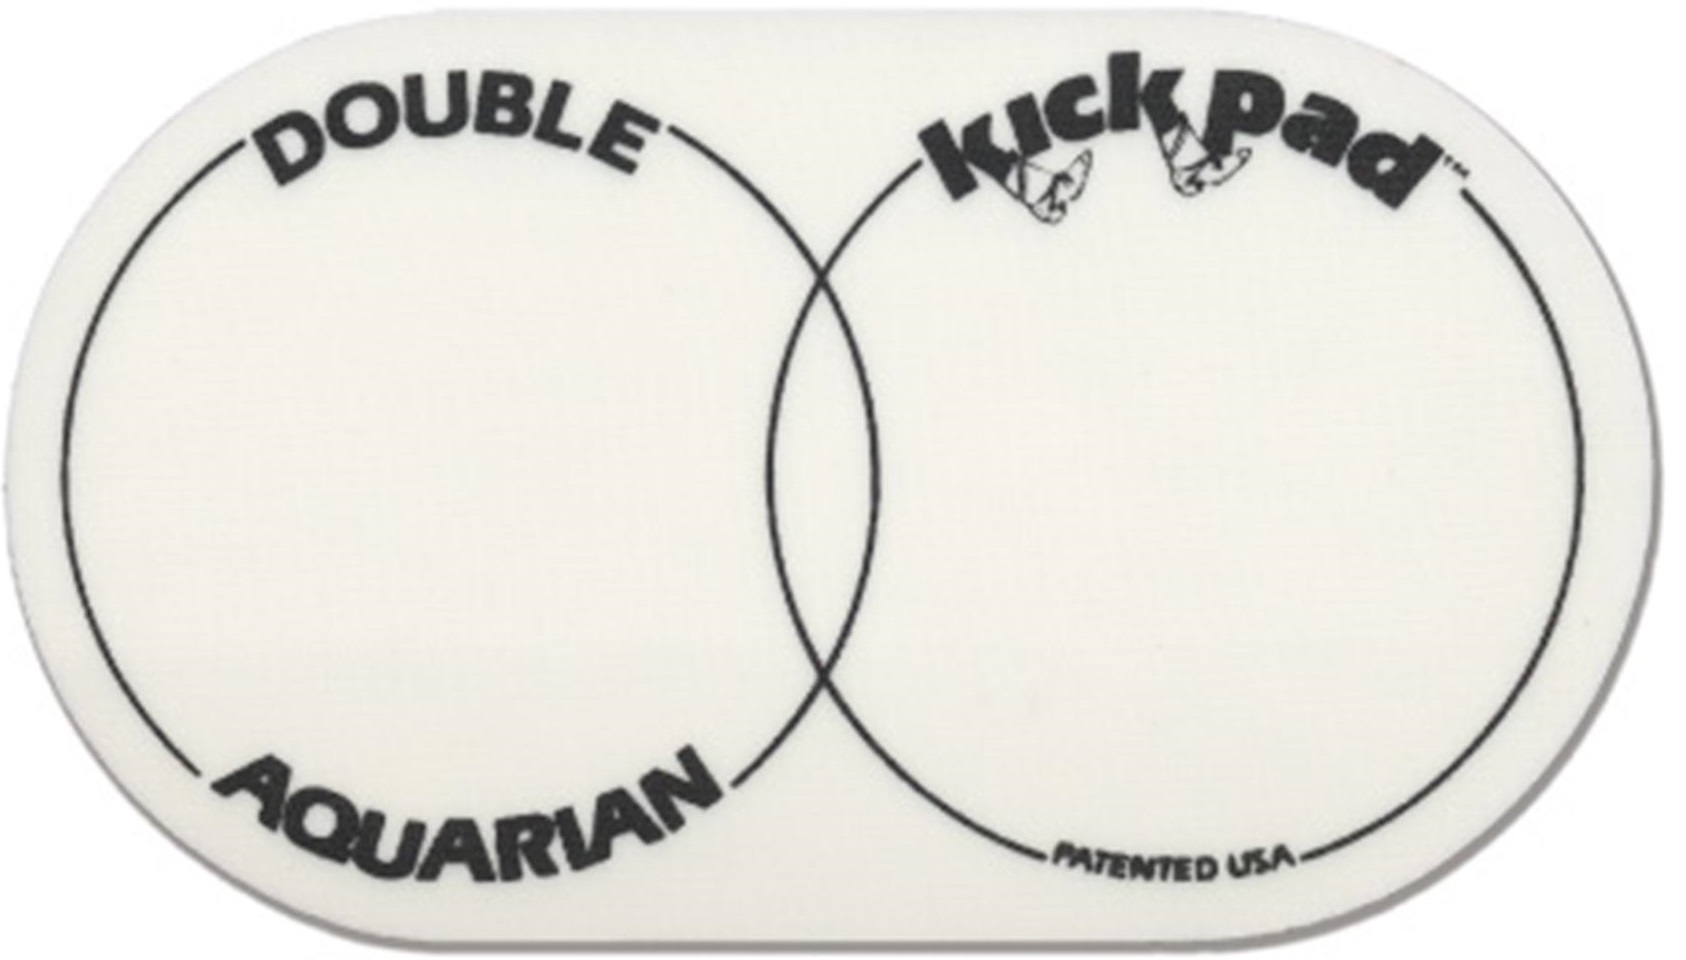 Aquarian DPK2 Double Kick Drum Pad